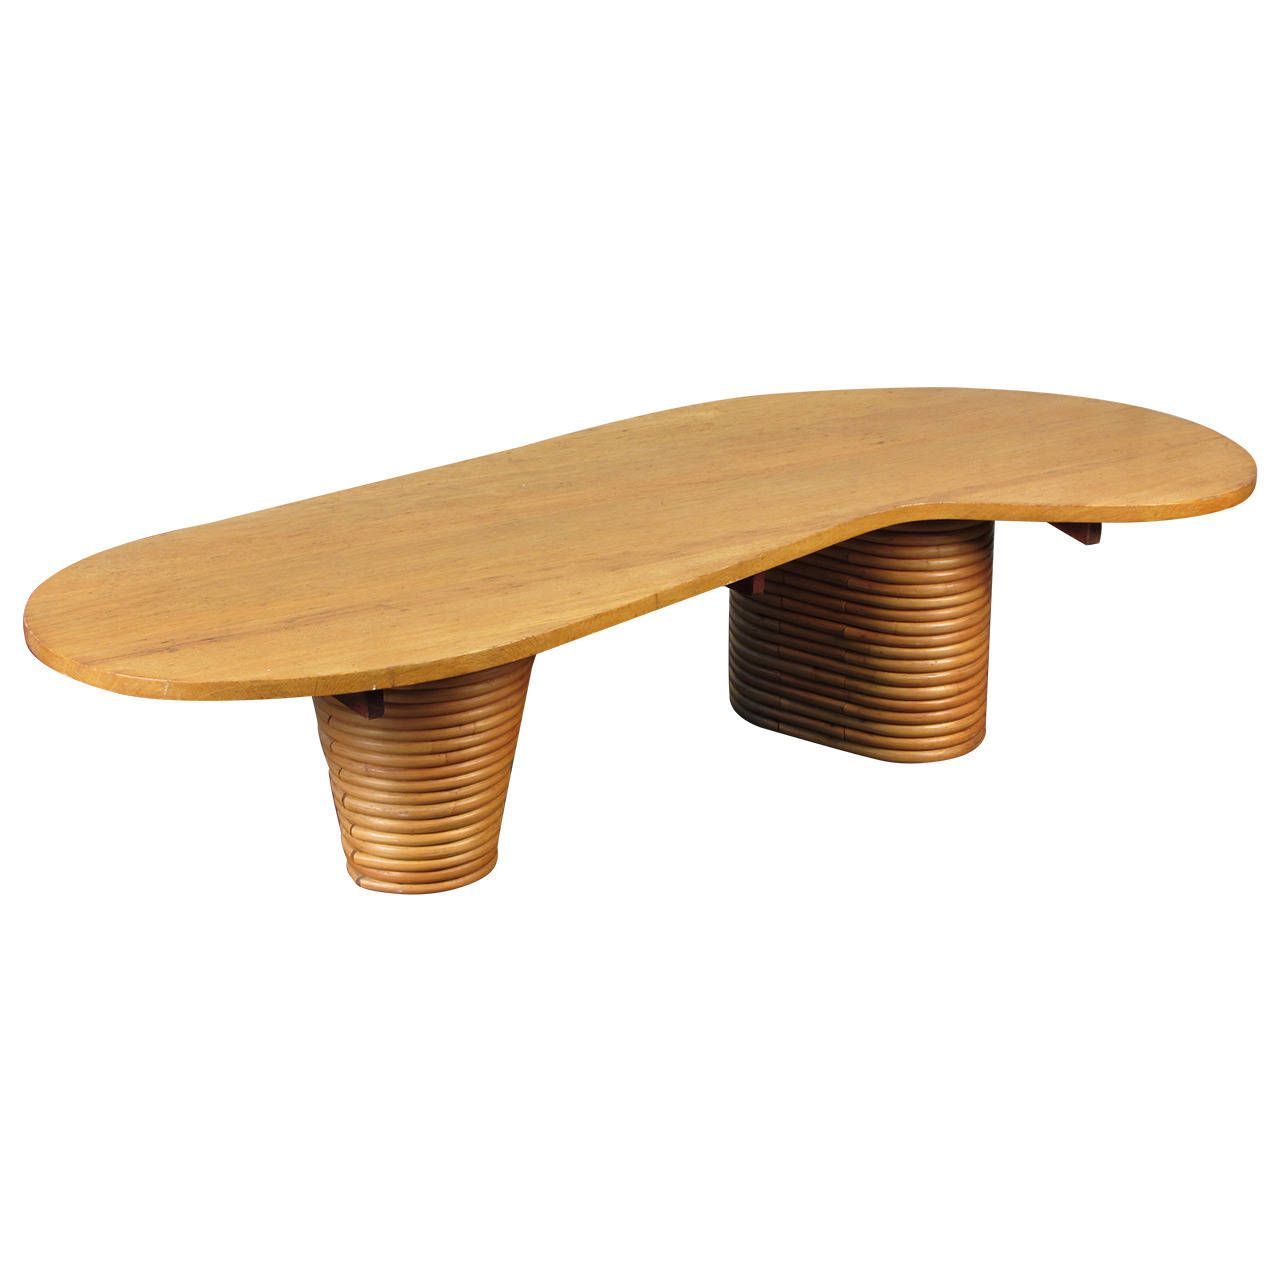 Rare Biomorphic Coffee Table with Rattan Base in the Style of Paul